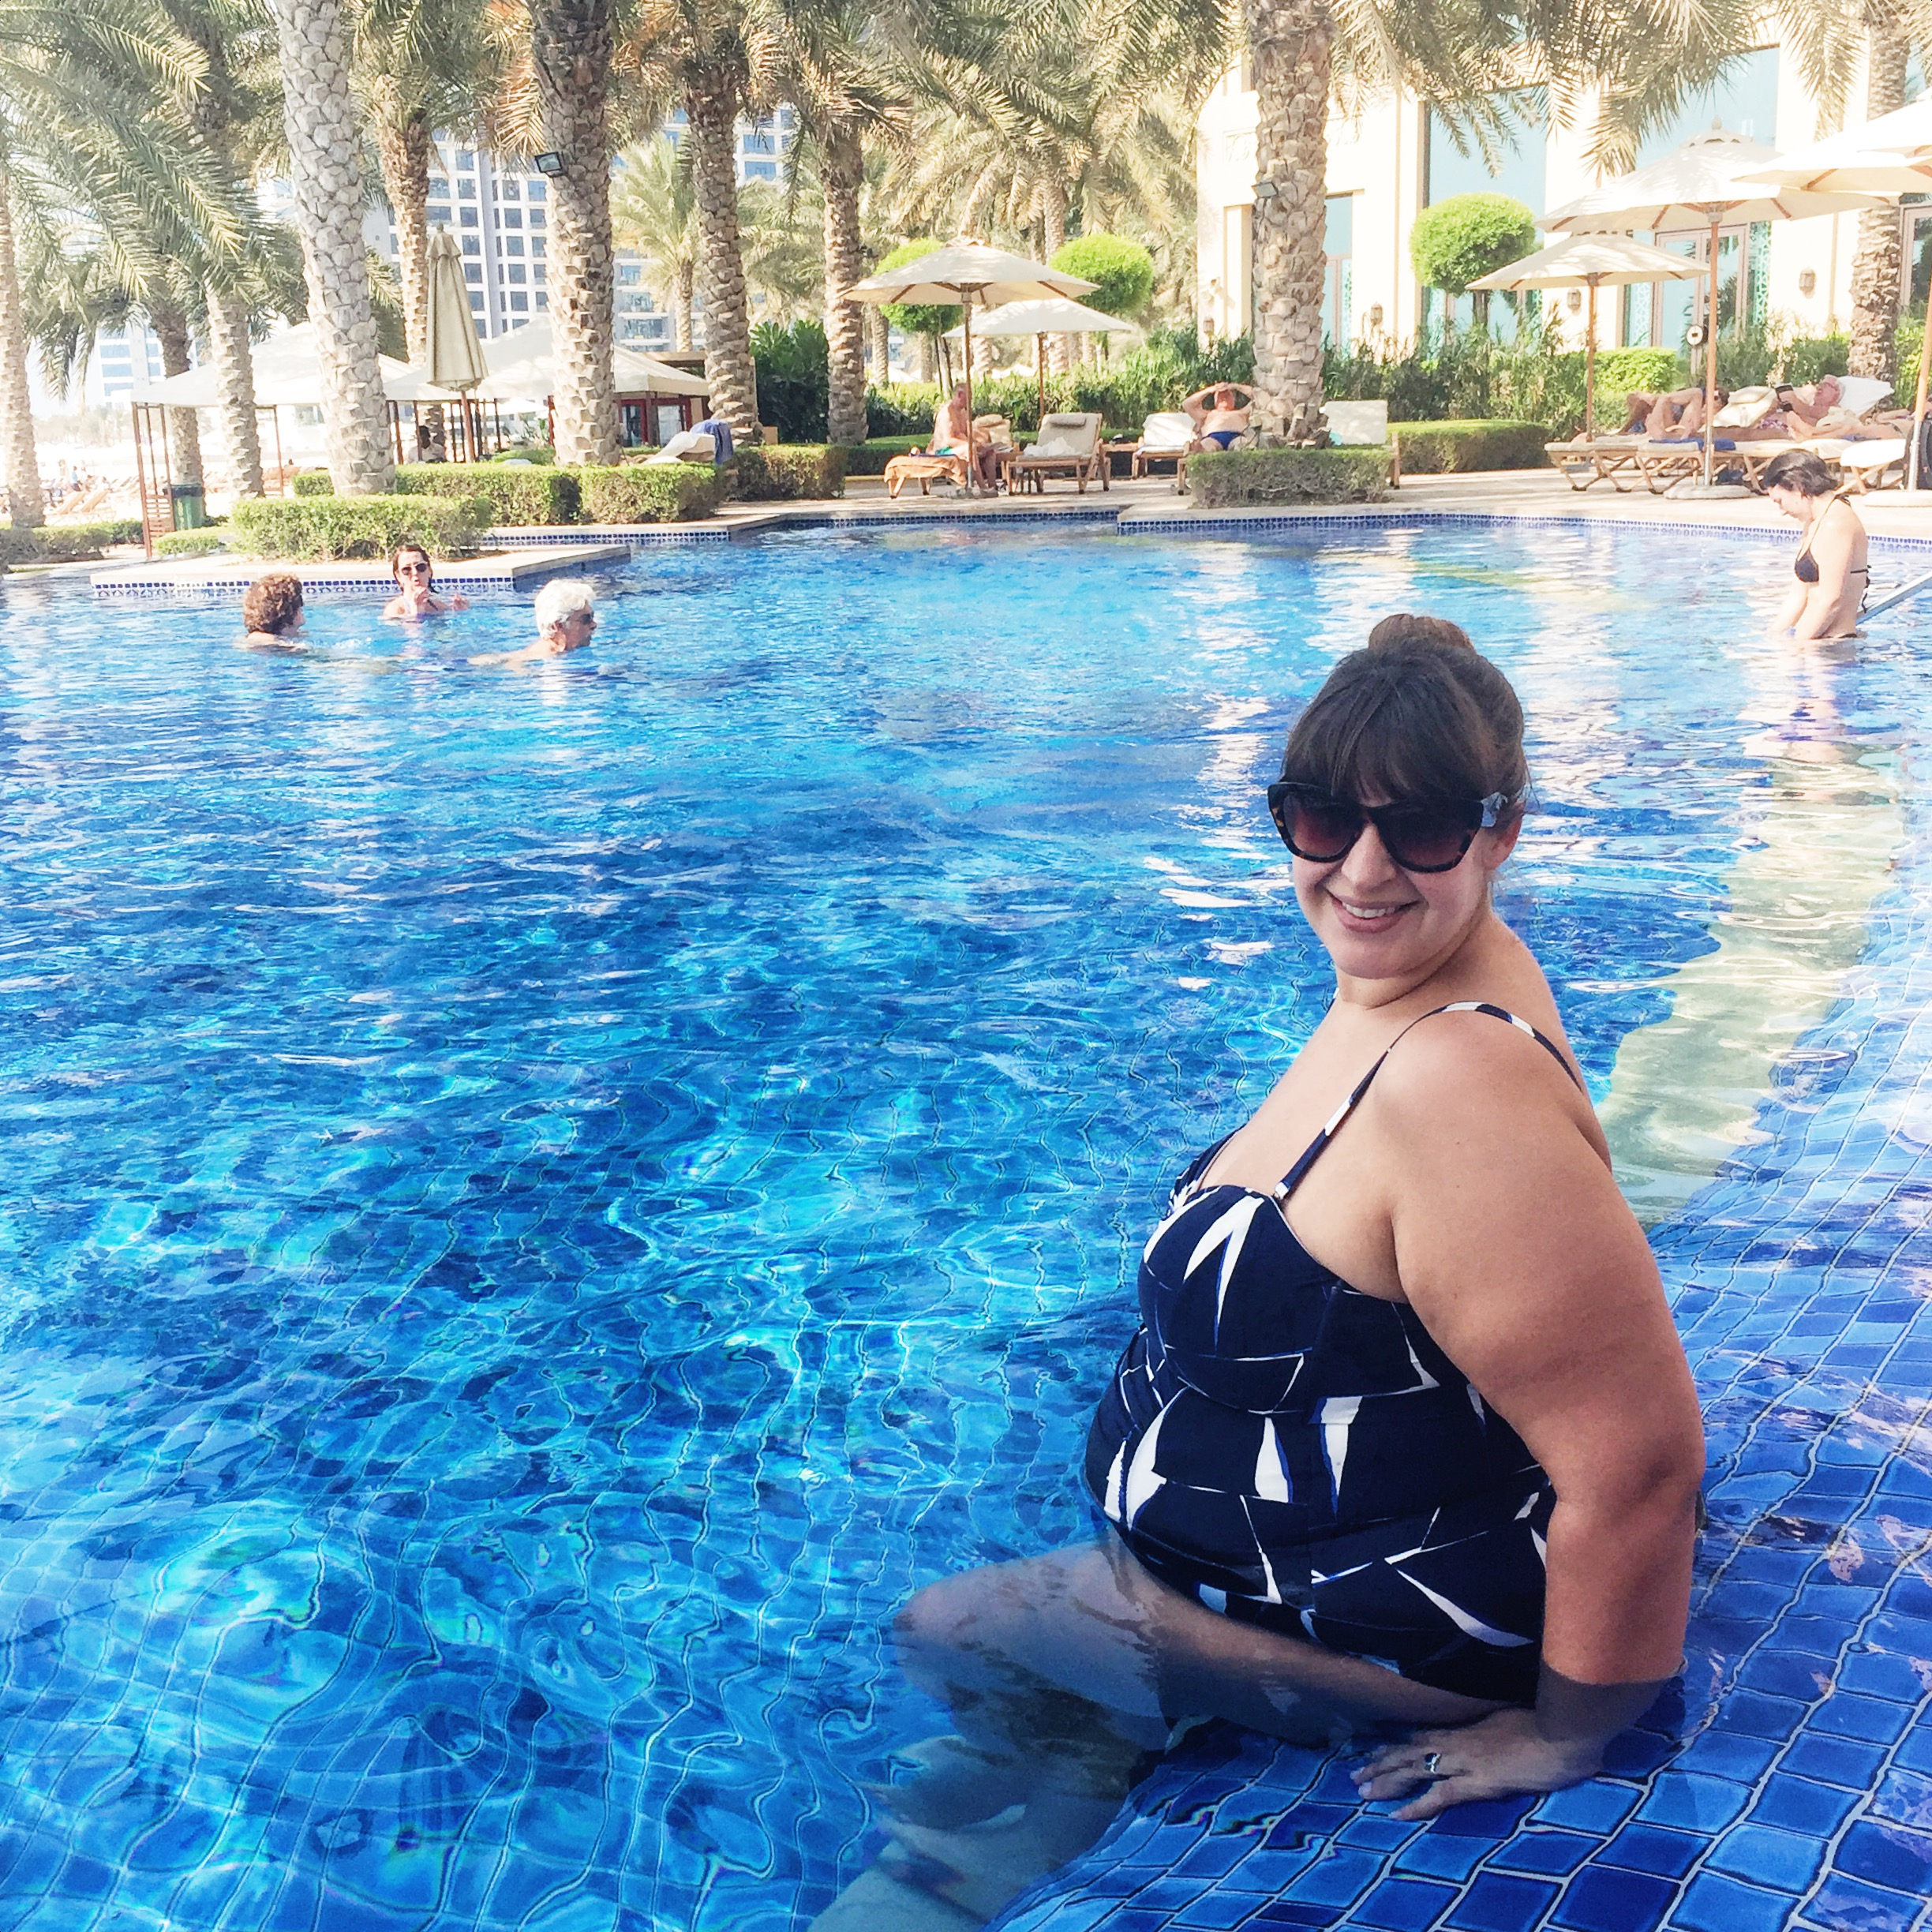 25 weeks pregnant plus size dubai